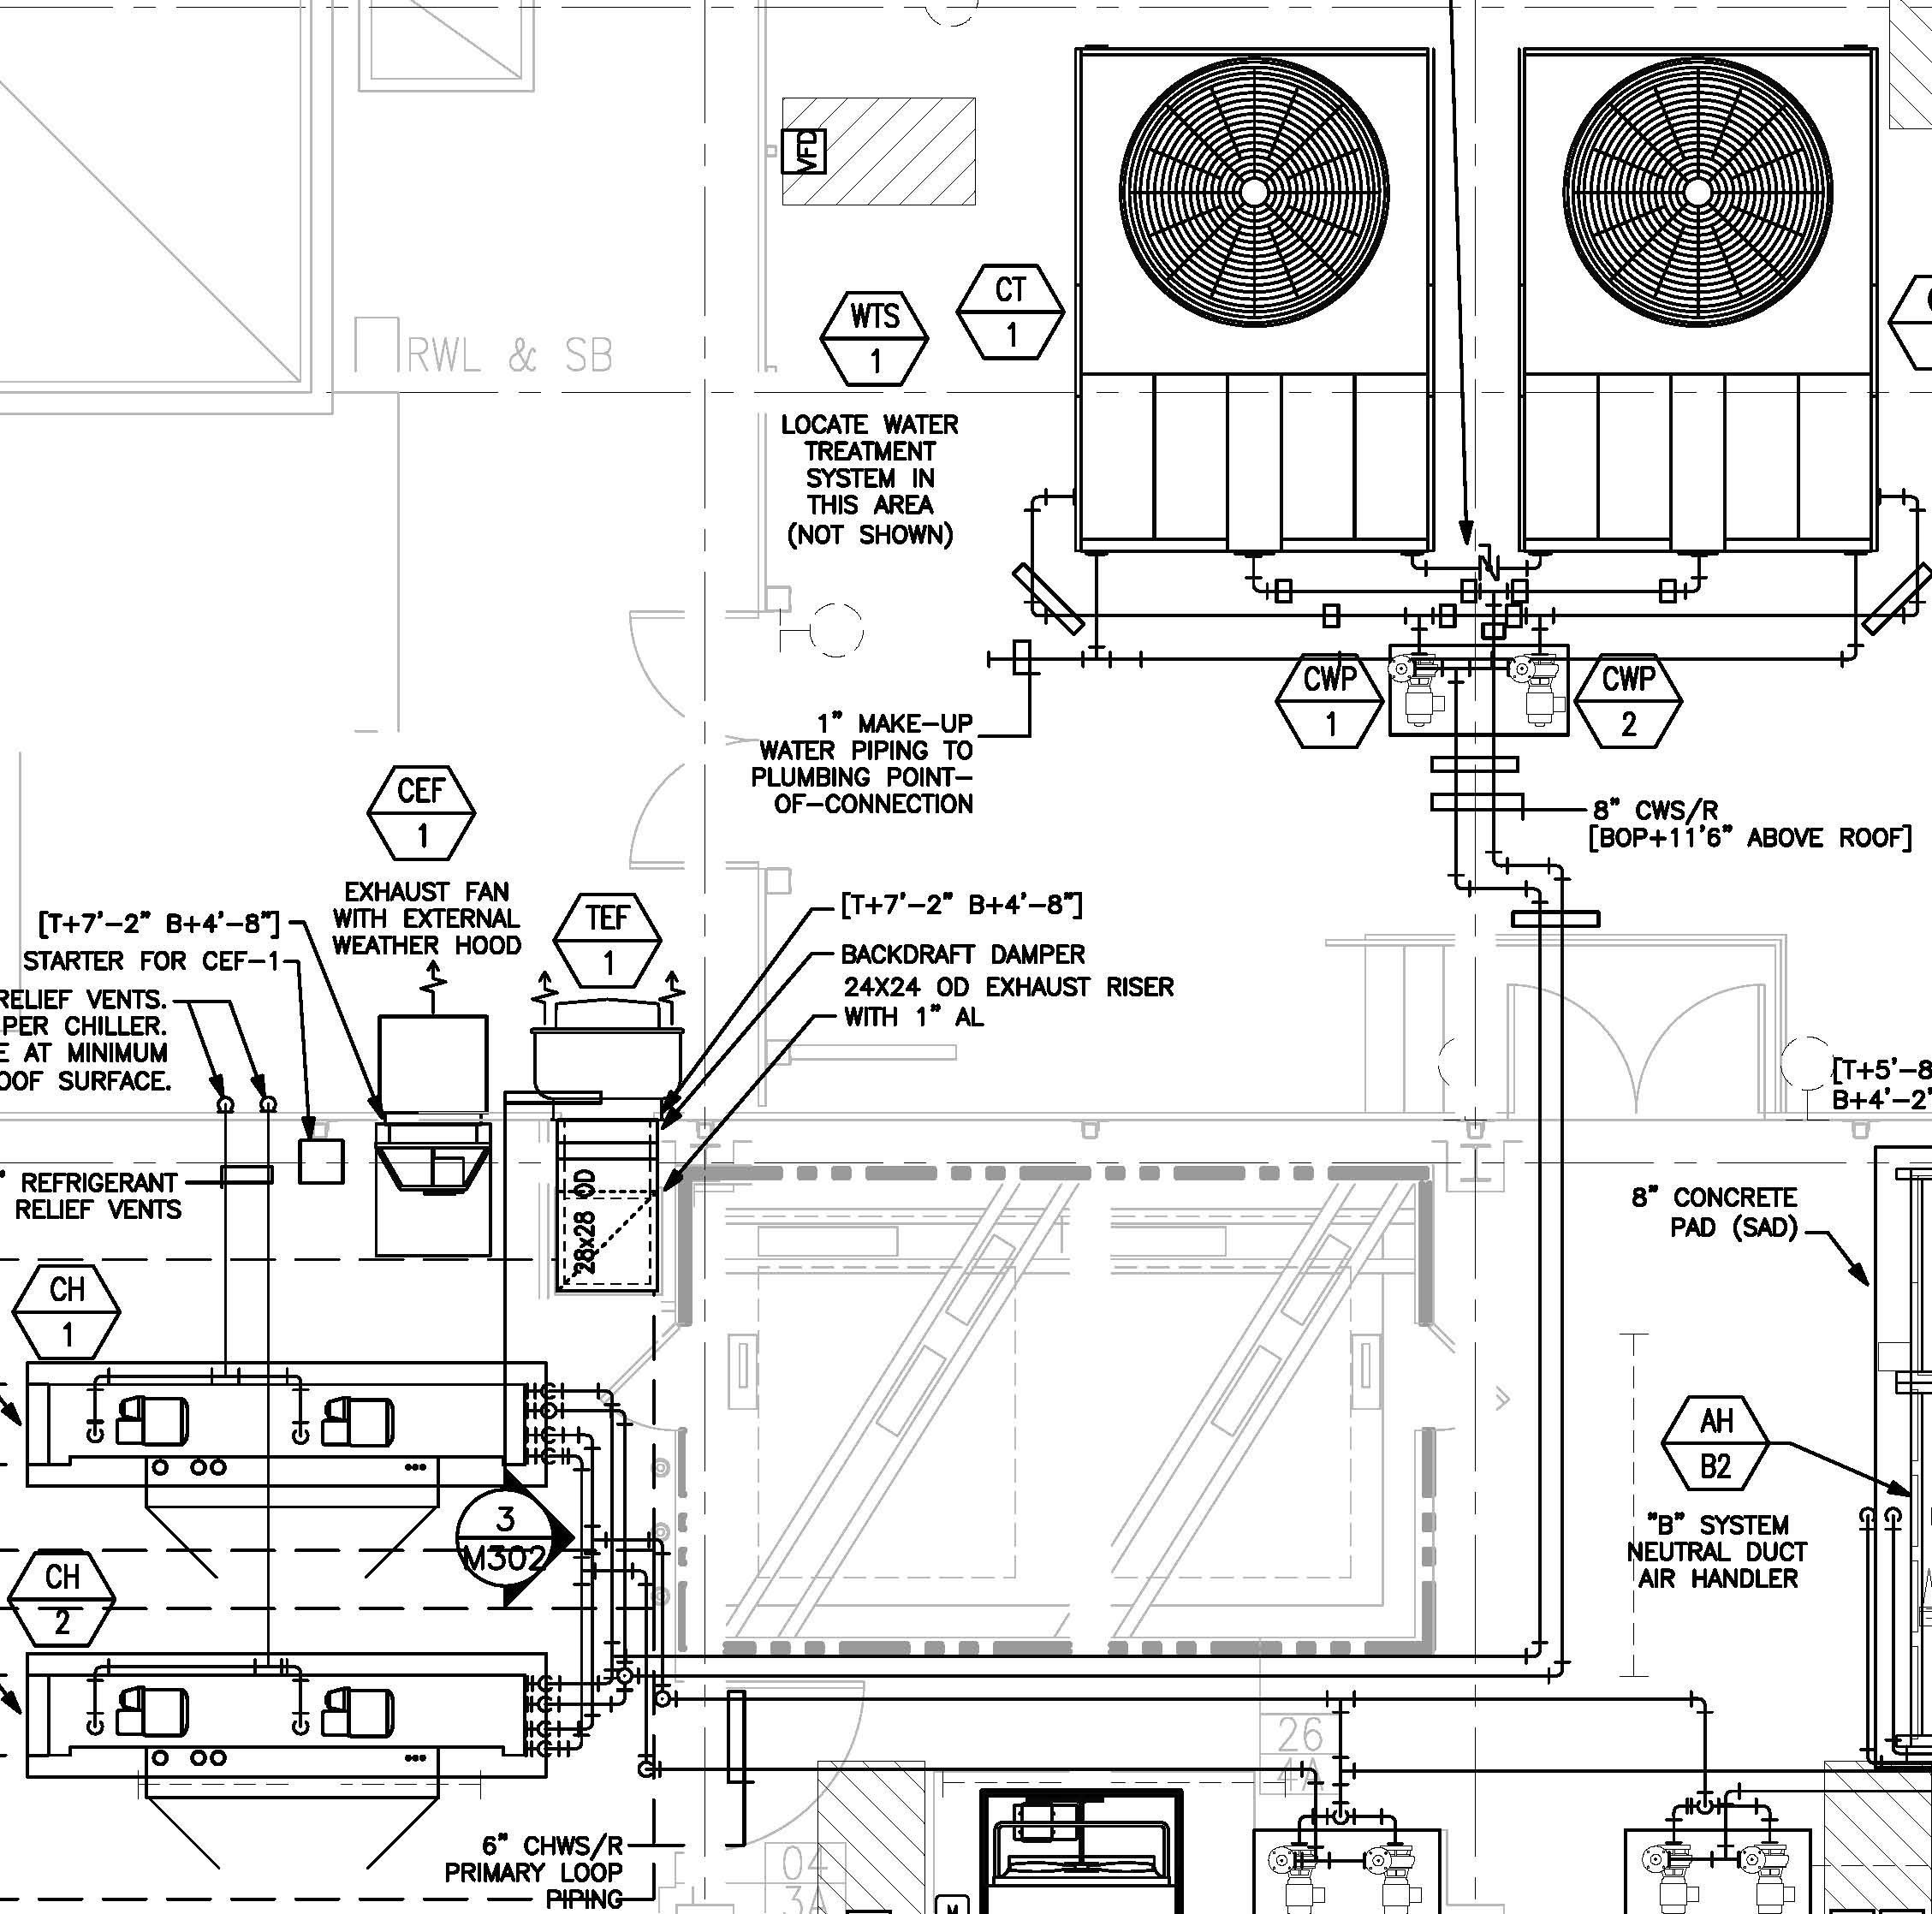 Payne Air Handler Wiring Diagram A66 Tempstar Ac Unit Wiring Diagram Free Download  U2013 My Wiring